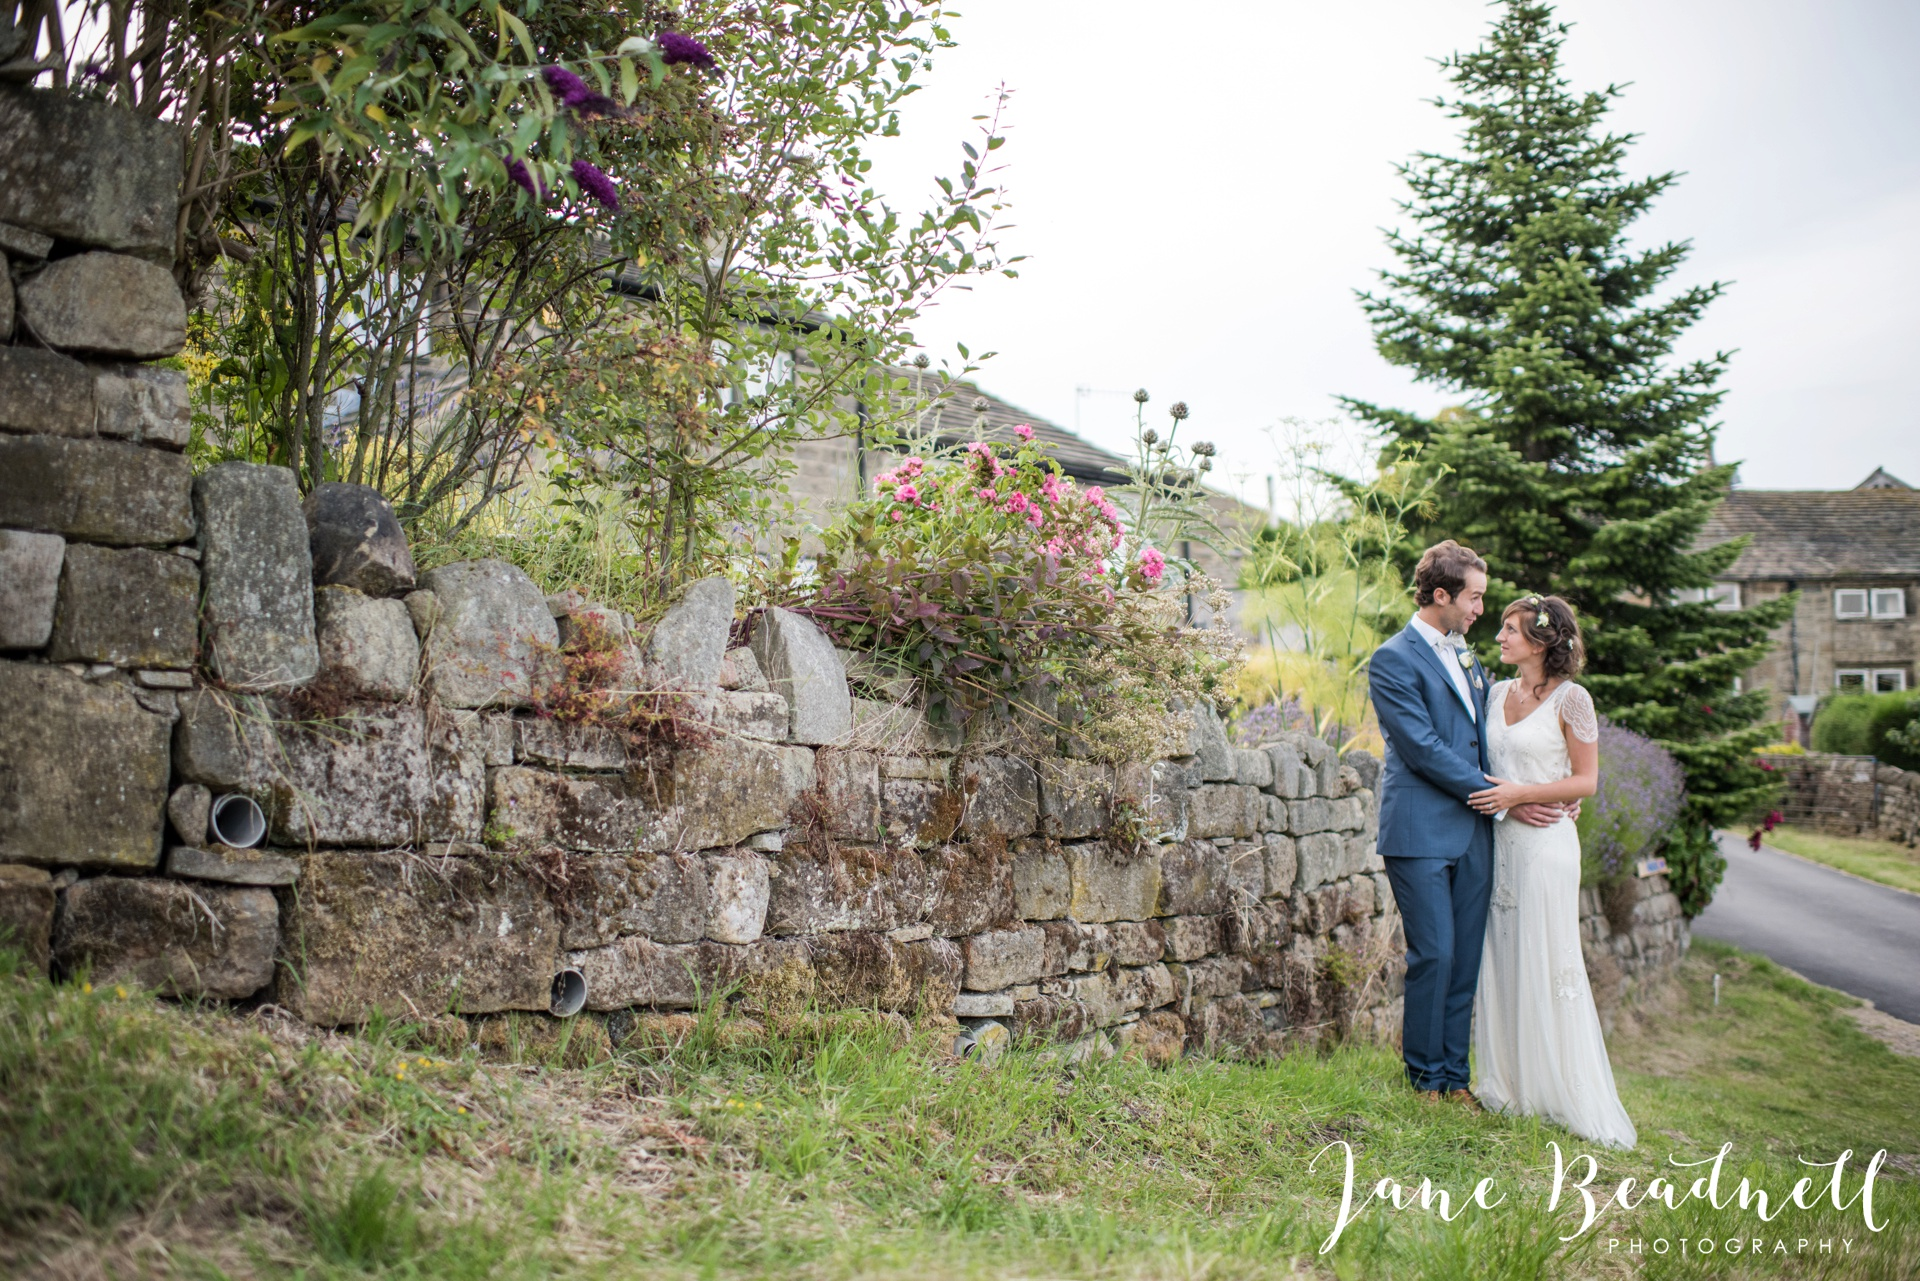 Jane Beadnell fine art wedding photographer Leeds_0143